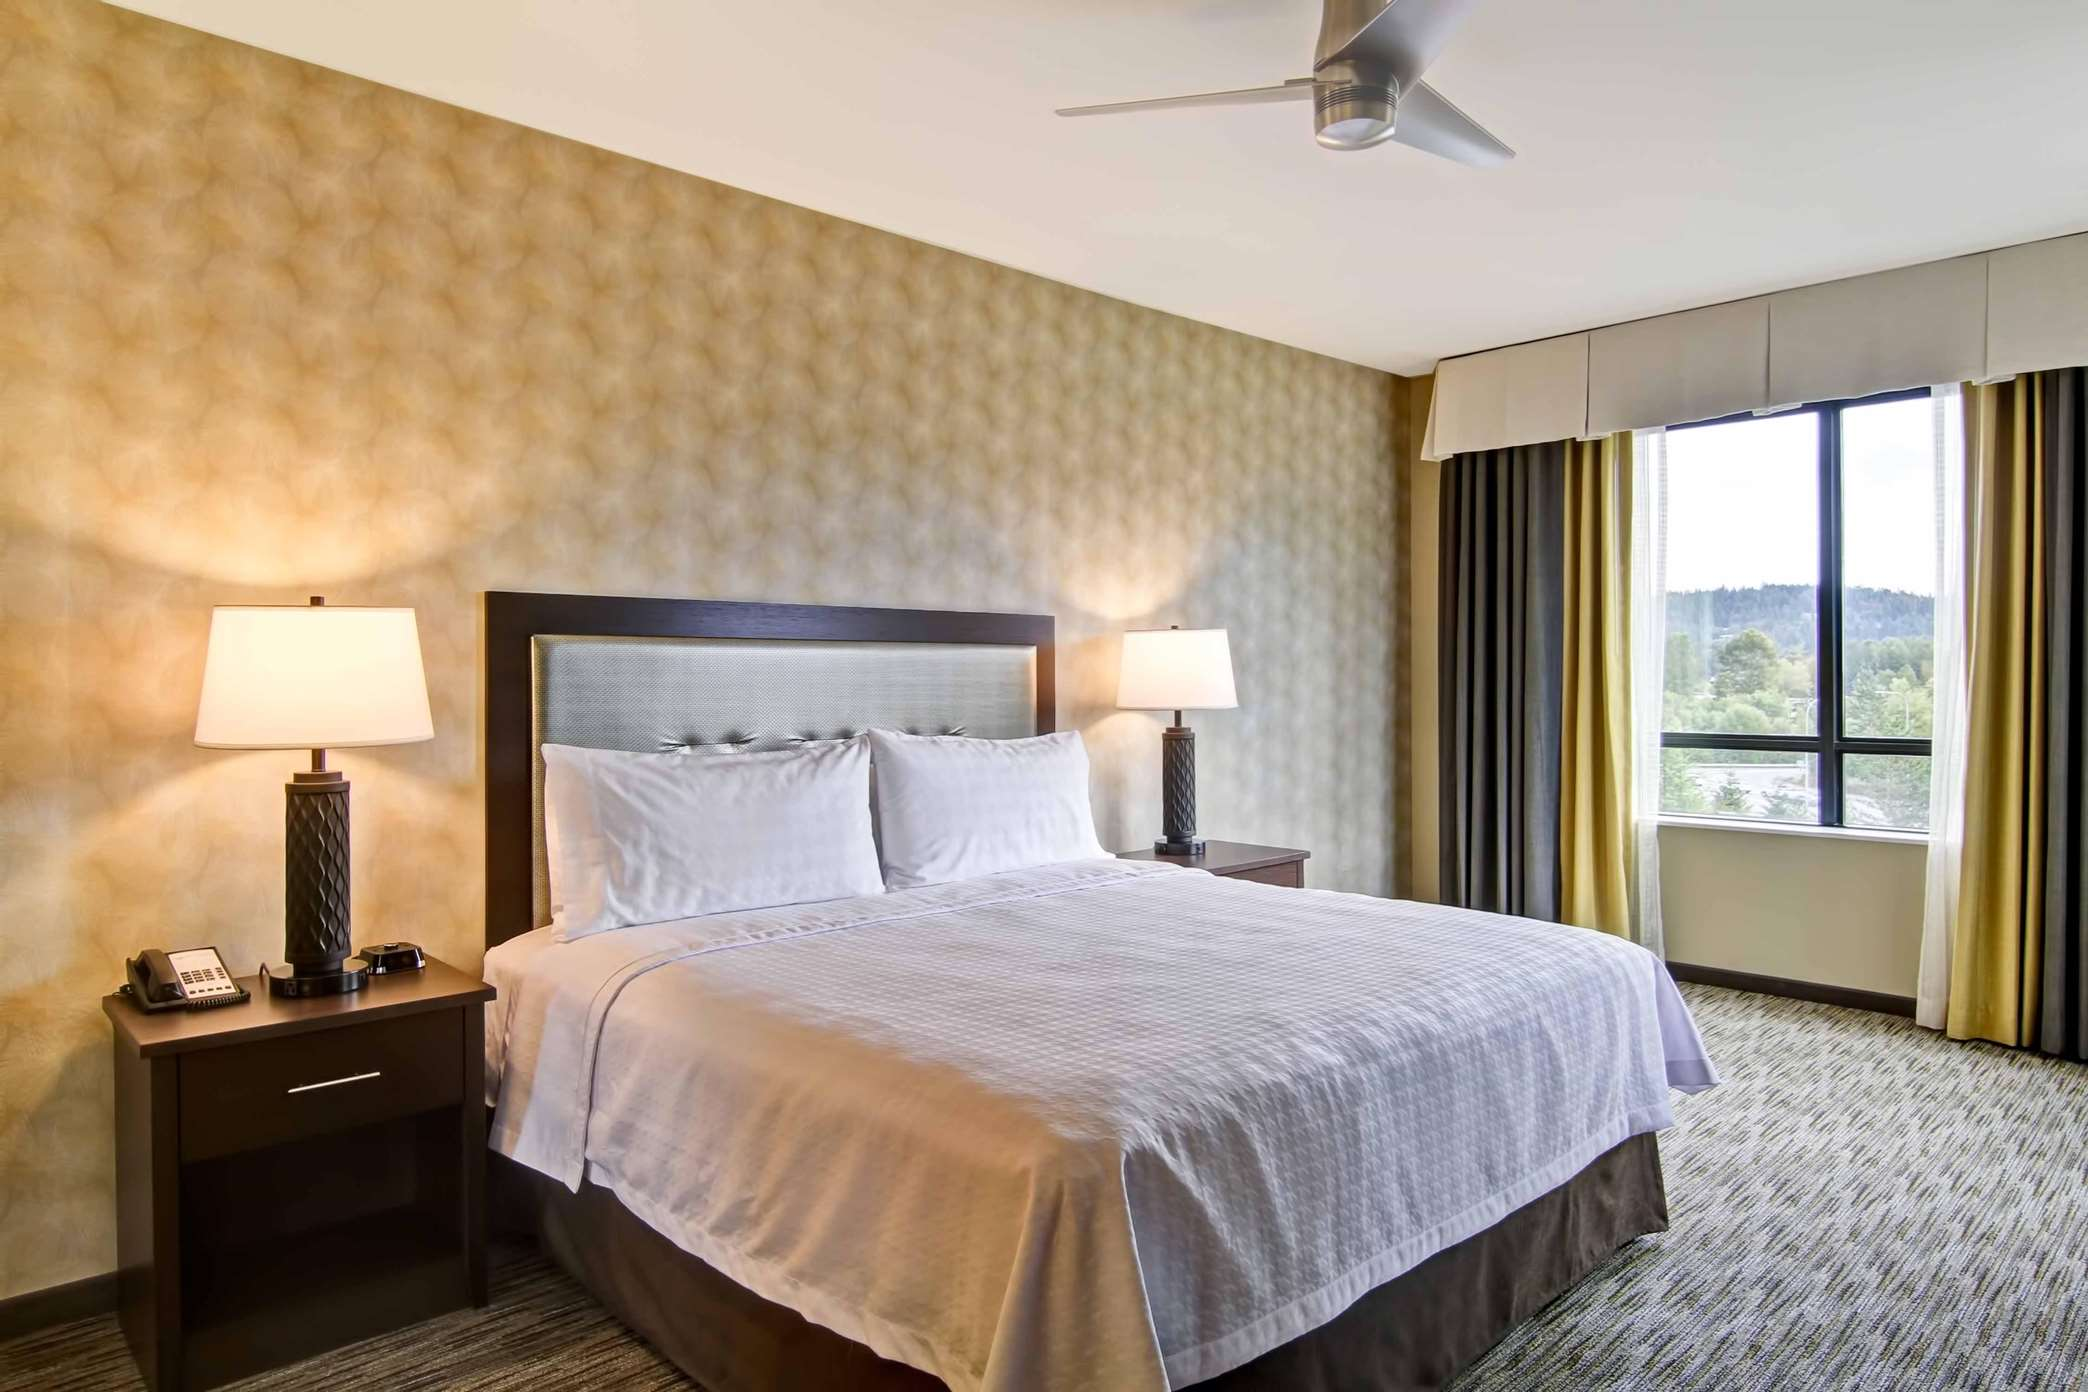 Homewood Suites by Hilton Seattle-Issaquah image 19